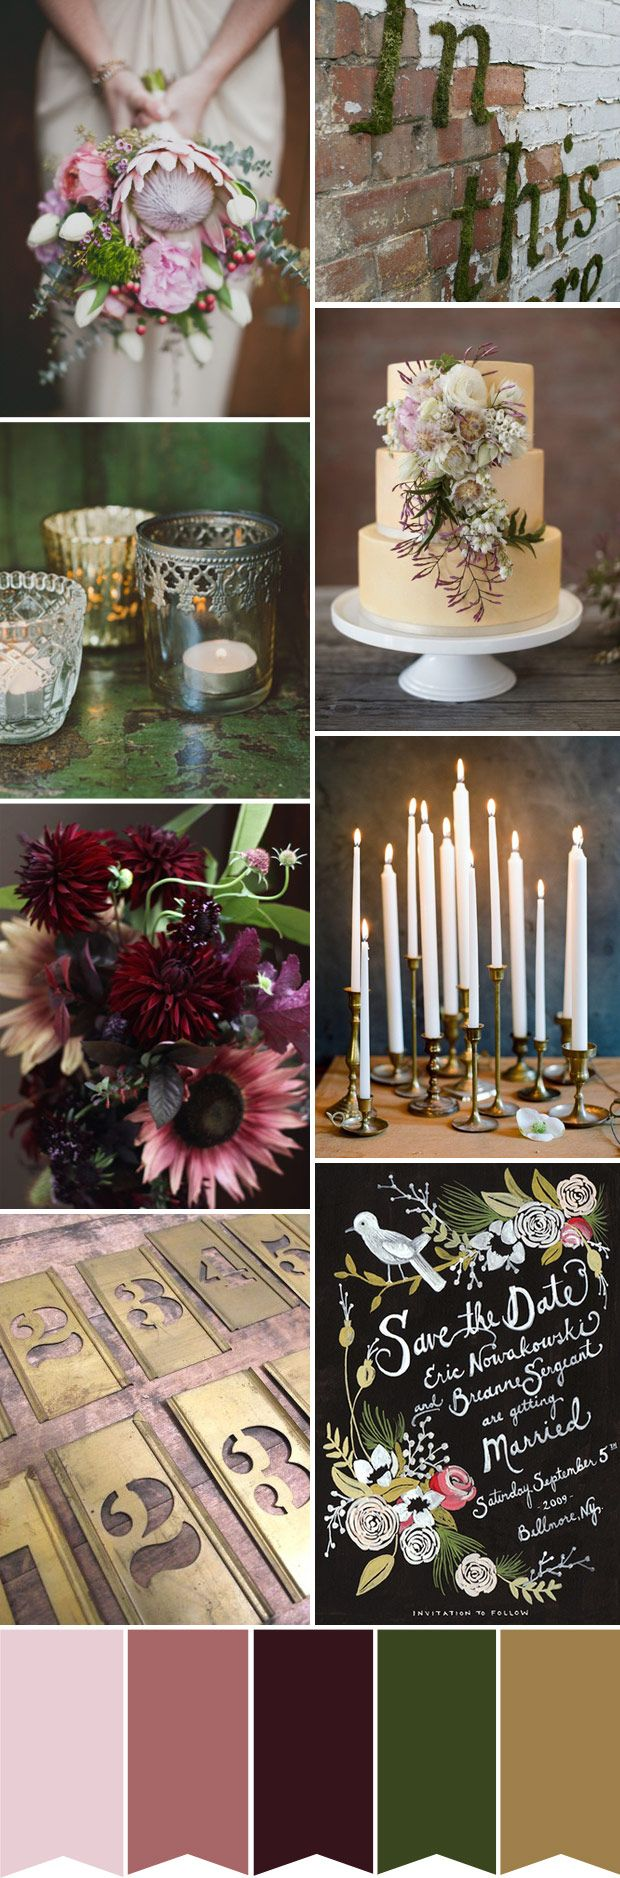 Botanical Inspired Colour Board - Read more on One Fab Day: http://onefabday.com/botanical-inspired-colour-board/